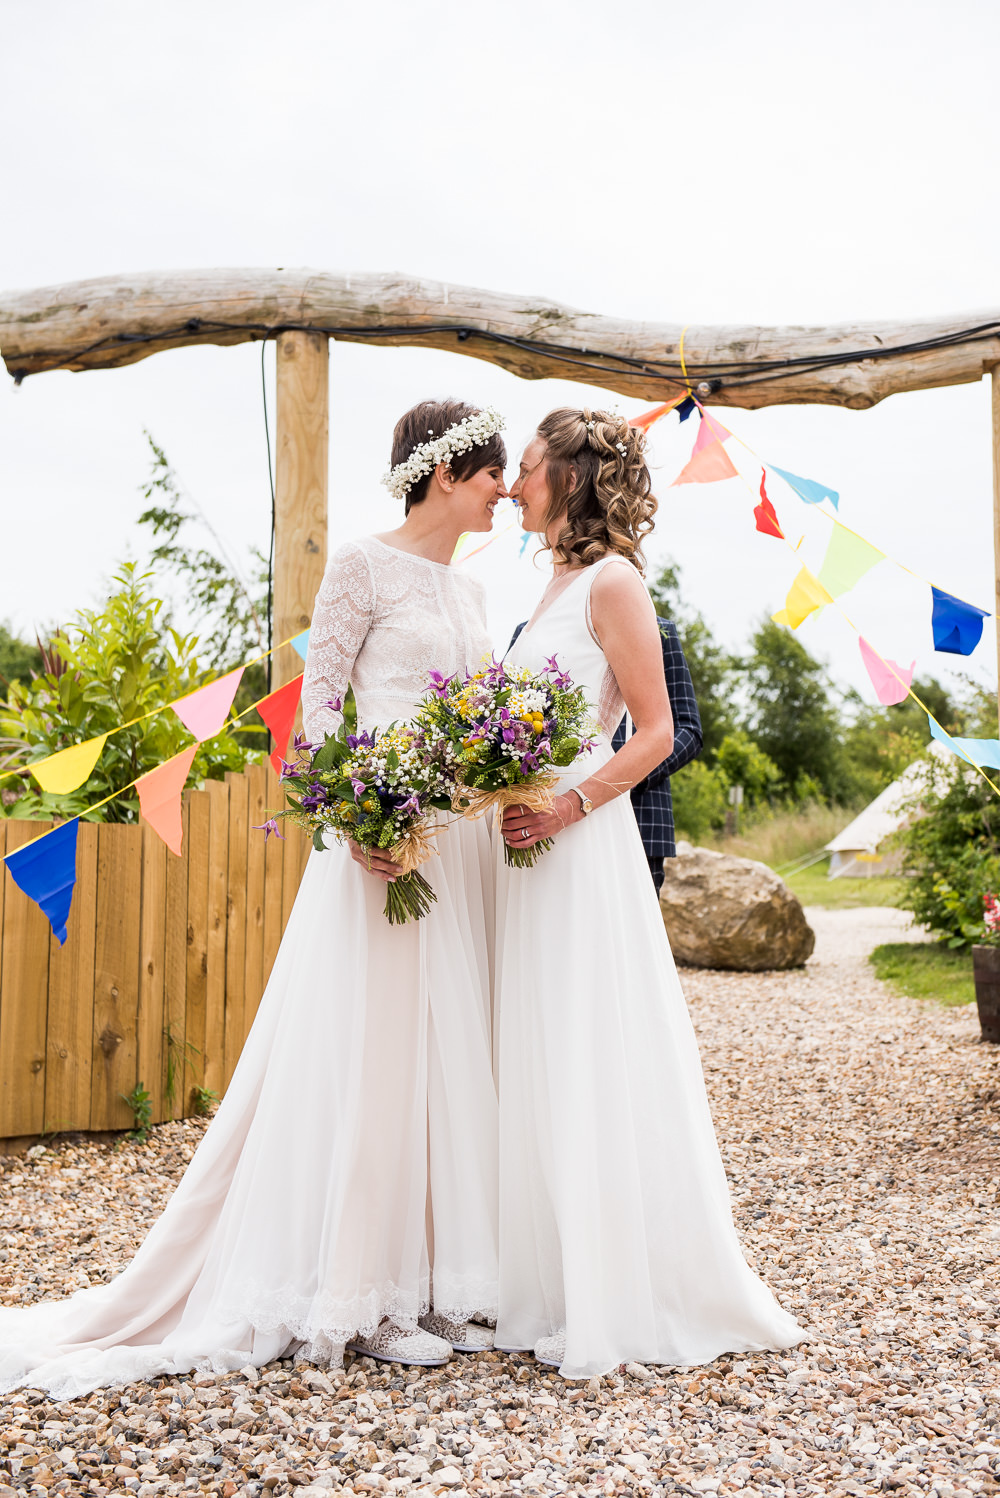 Bride Bridal Long Sleeve Lace Dress Lace Sleeveless Gypsophila Crown Wildflower Bouquet Inkersall Grange Farm Wedding Jessica Grace Photography